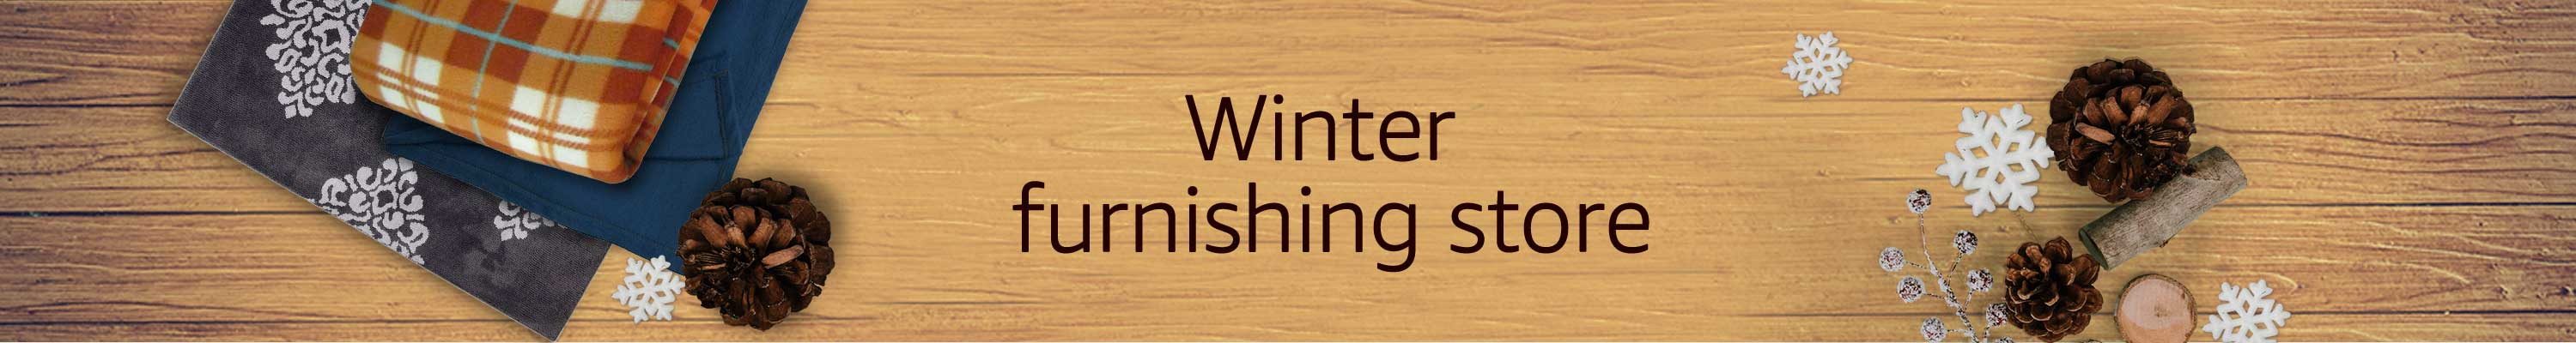 Winter Furnishing Store